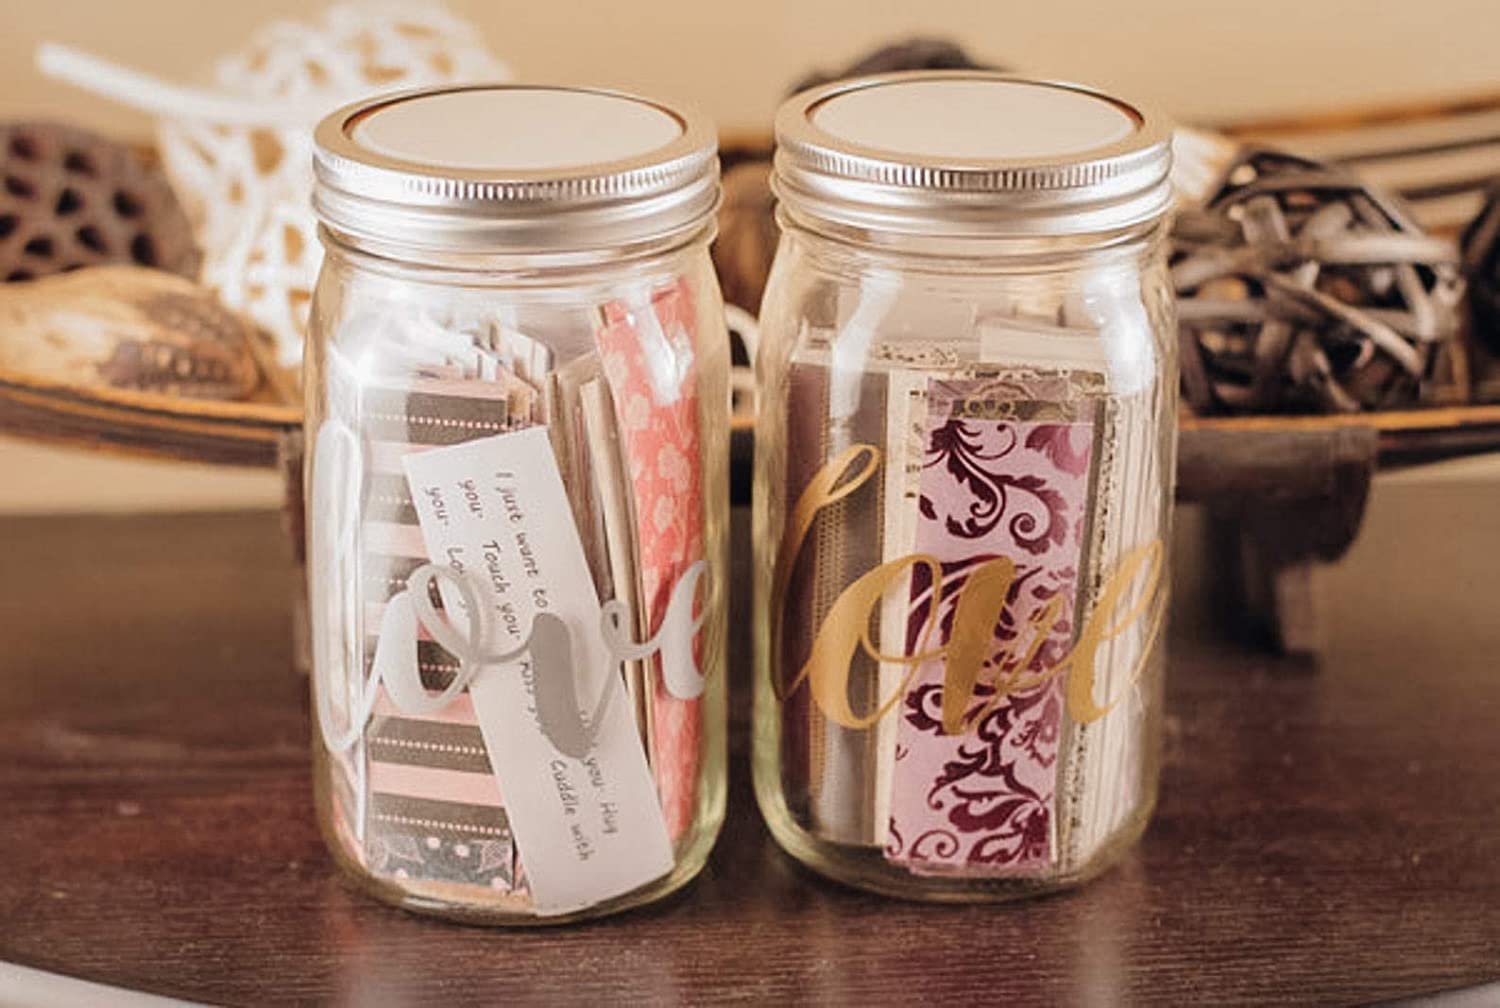 Amazon Com 365 Love Notes In A Jar Love Quotes Reasons Why I Love You Thoughtful And Personalize Gift Couple Keepsake Message In A Bottle Handmade